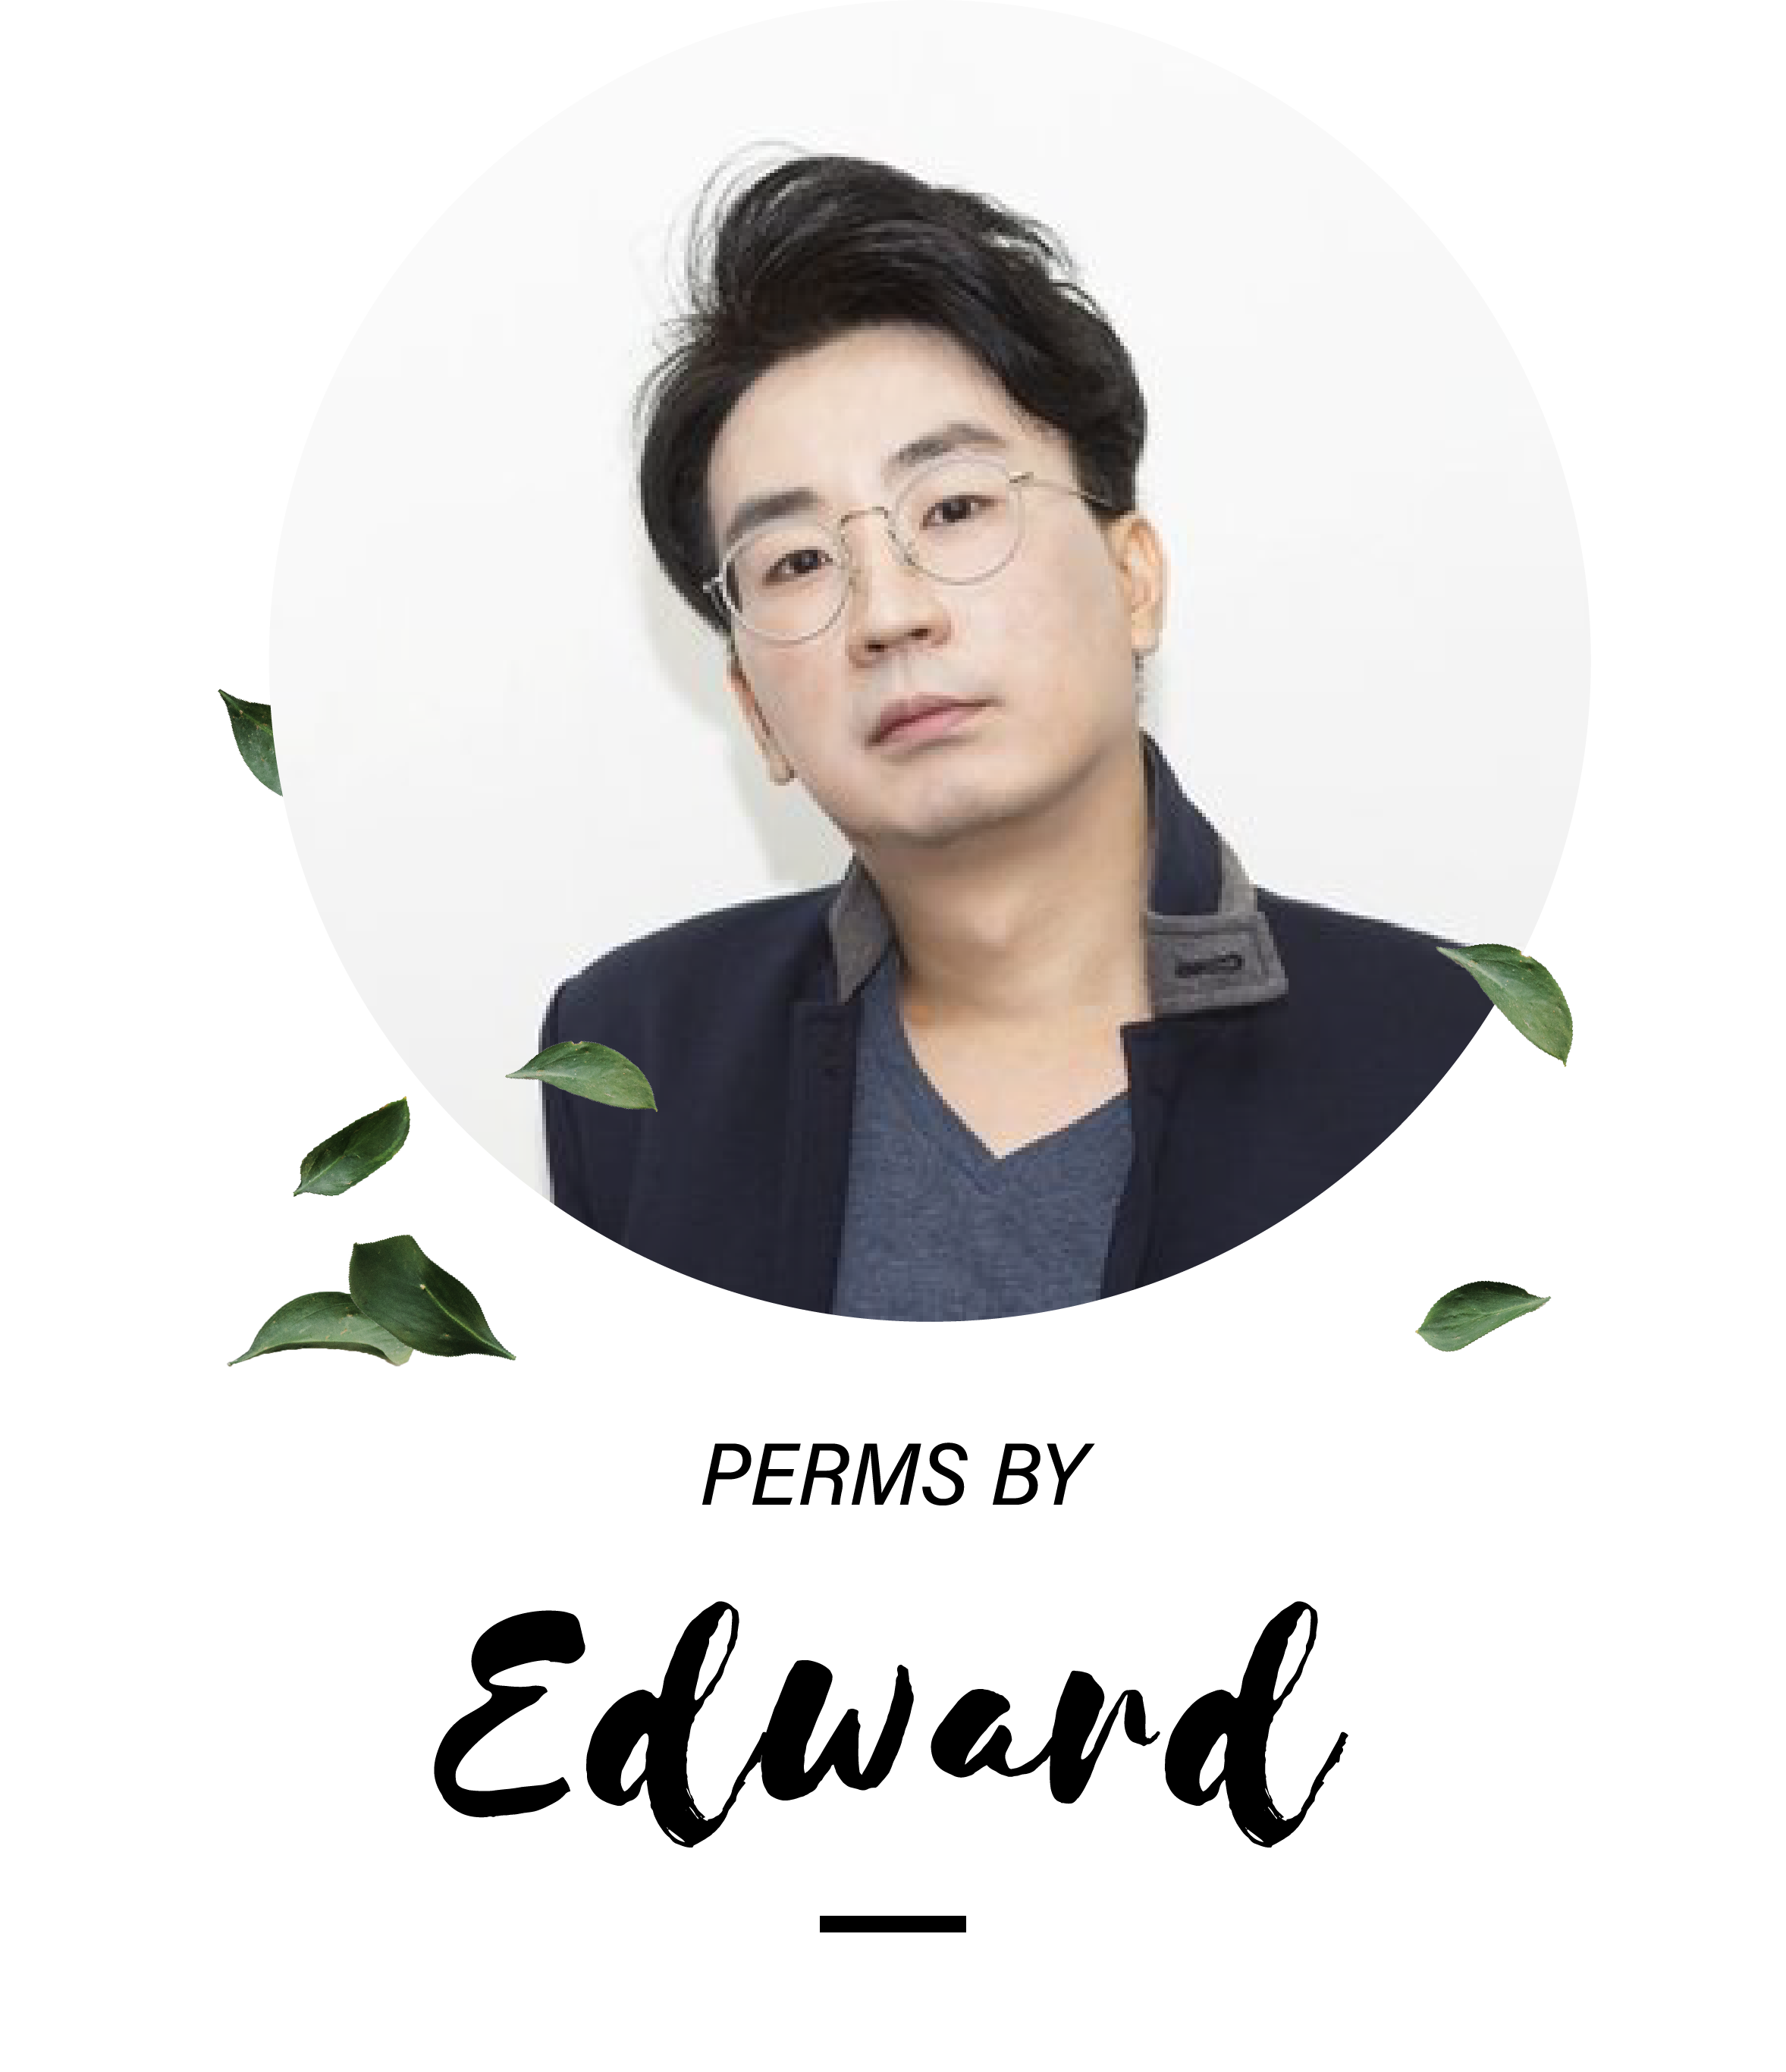 Korean Stylist Images_For Perm Page-05.png